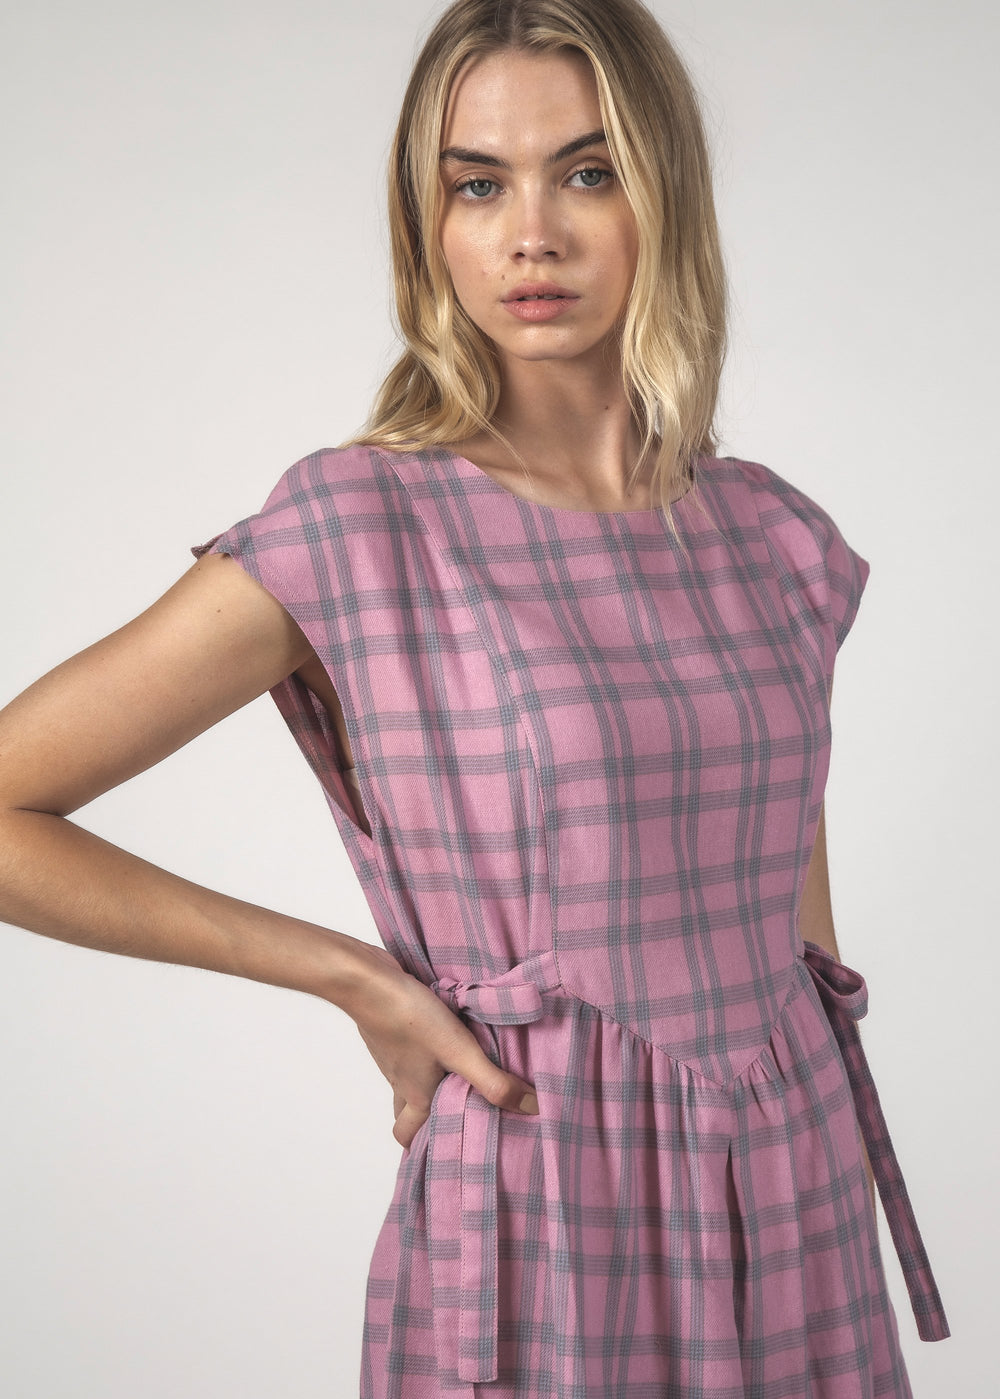 SALE - MARGOT DRESS - Blush Check